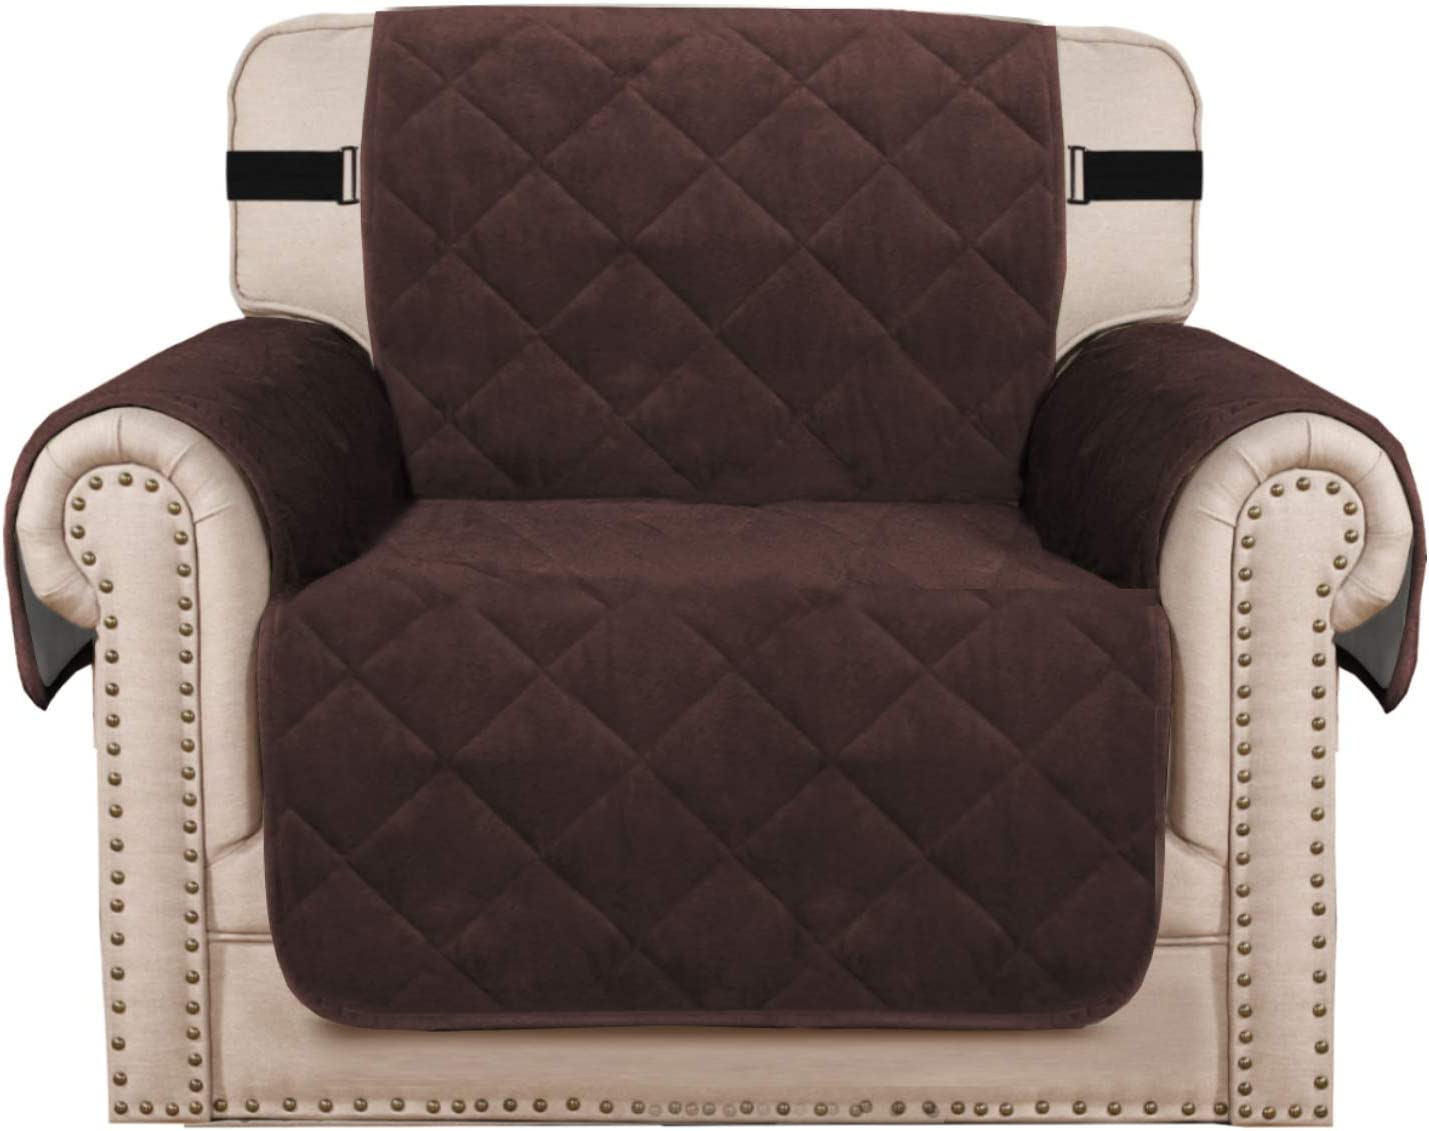 H Versailtex Thick Velvet Armchair Cover Couch Covers 1 Cushion Armchair Slipcover For Living Room Protector From Pets Dogs Two Non Slip Elastic Straps On Back And Base Armchair 23 Brown Kitchen